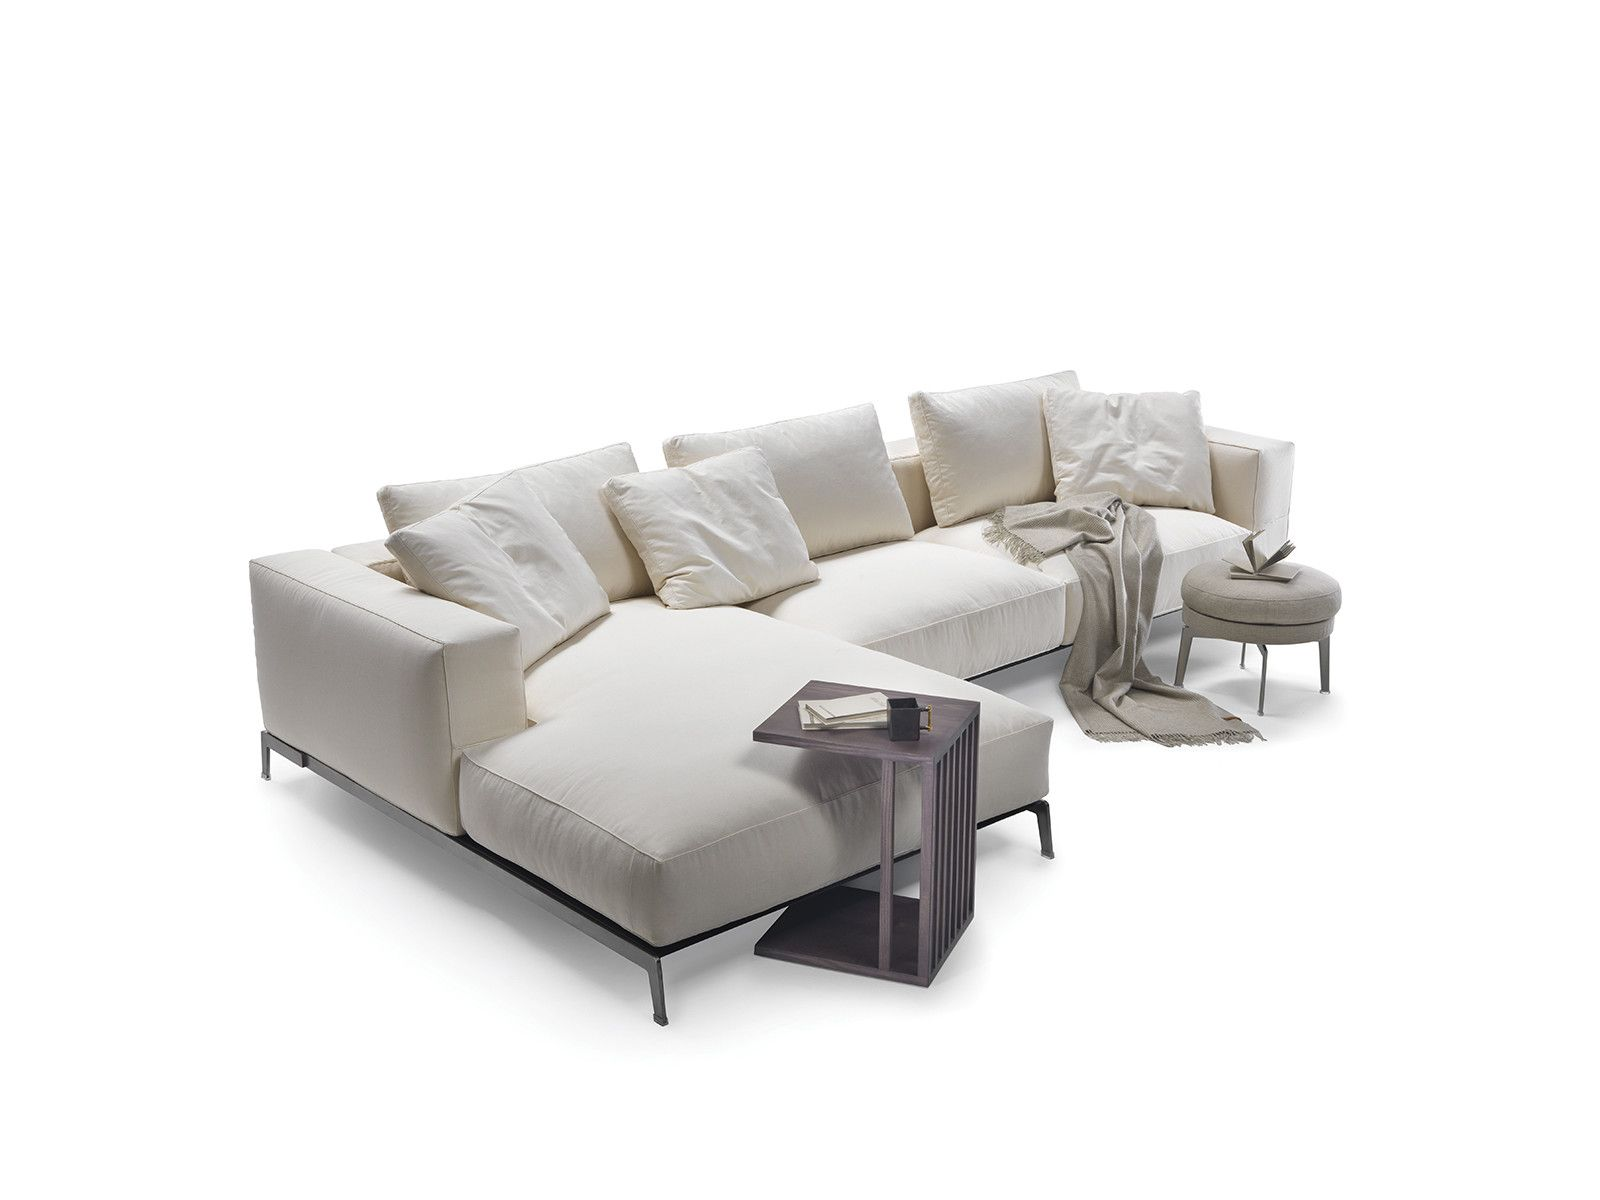 ETTORE Sofa with chaise longue Ettore Collection by FLEXFORM